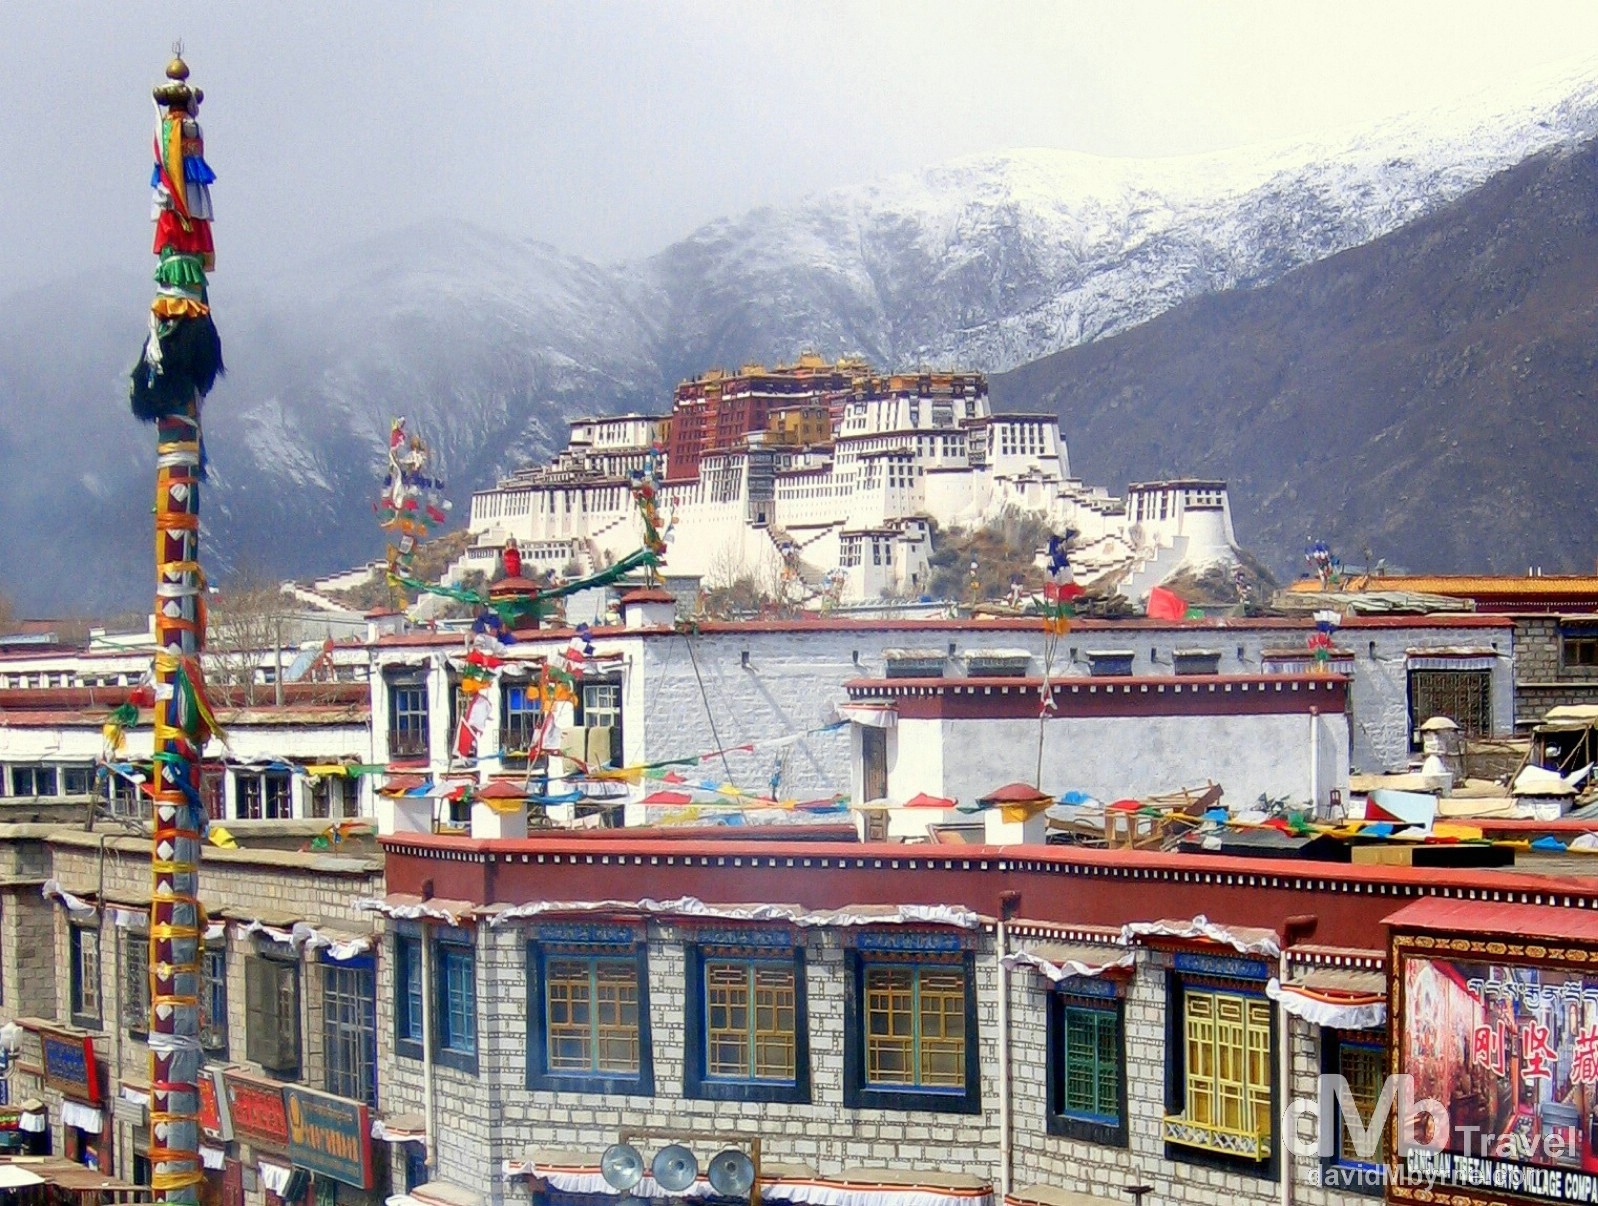 The Potala Palace as seen from the roof of the Jokhang Temple in Lhasa, Tibet. February 27th, 2008.